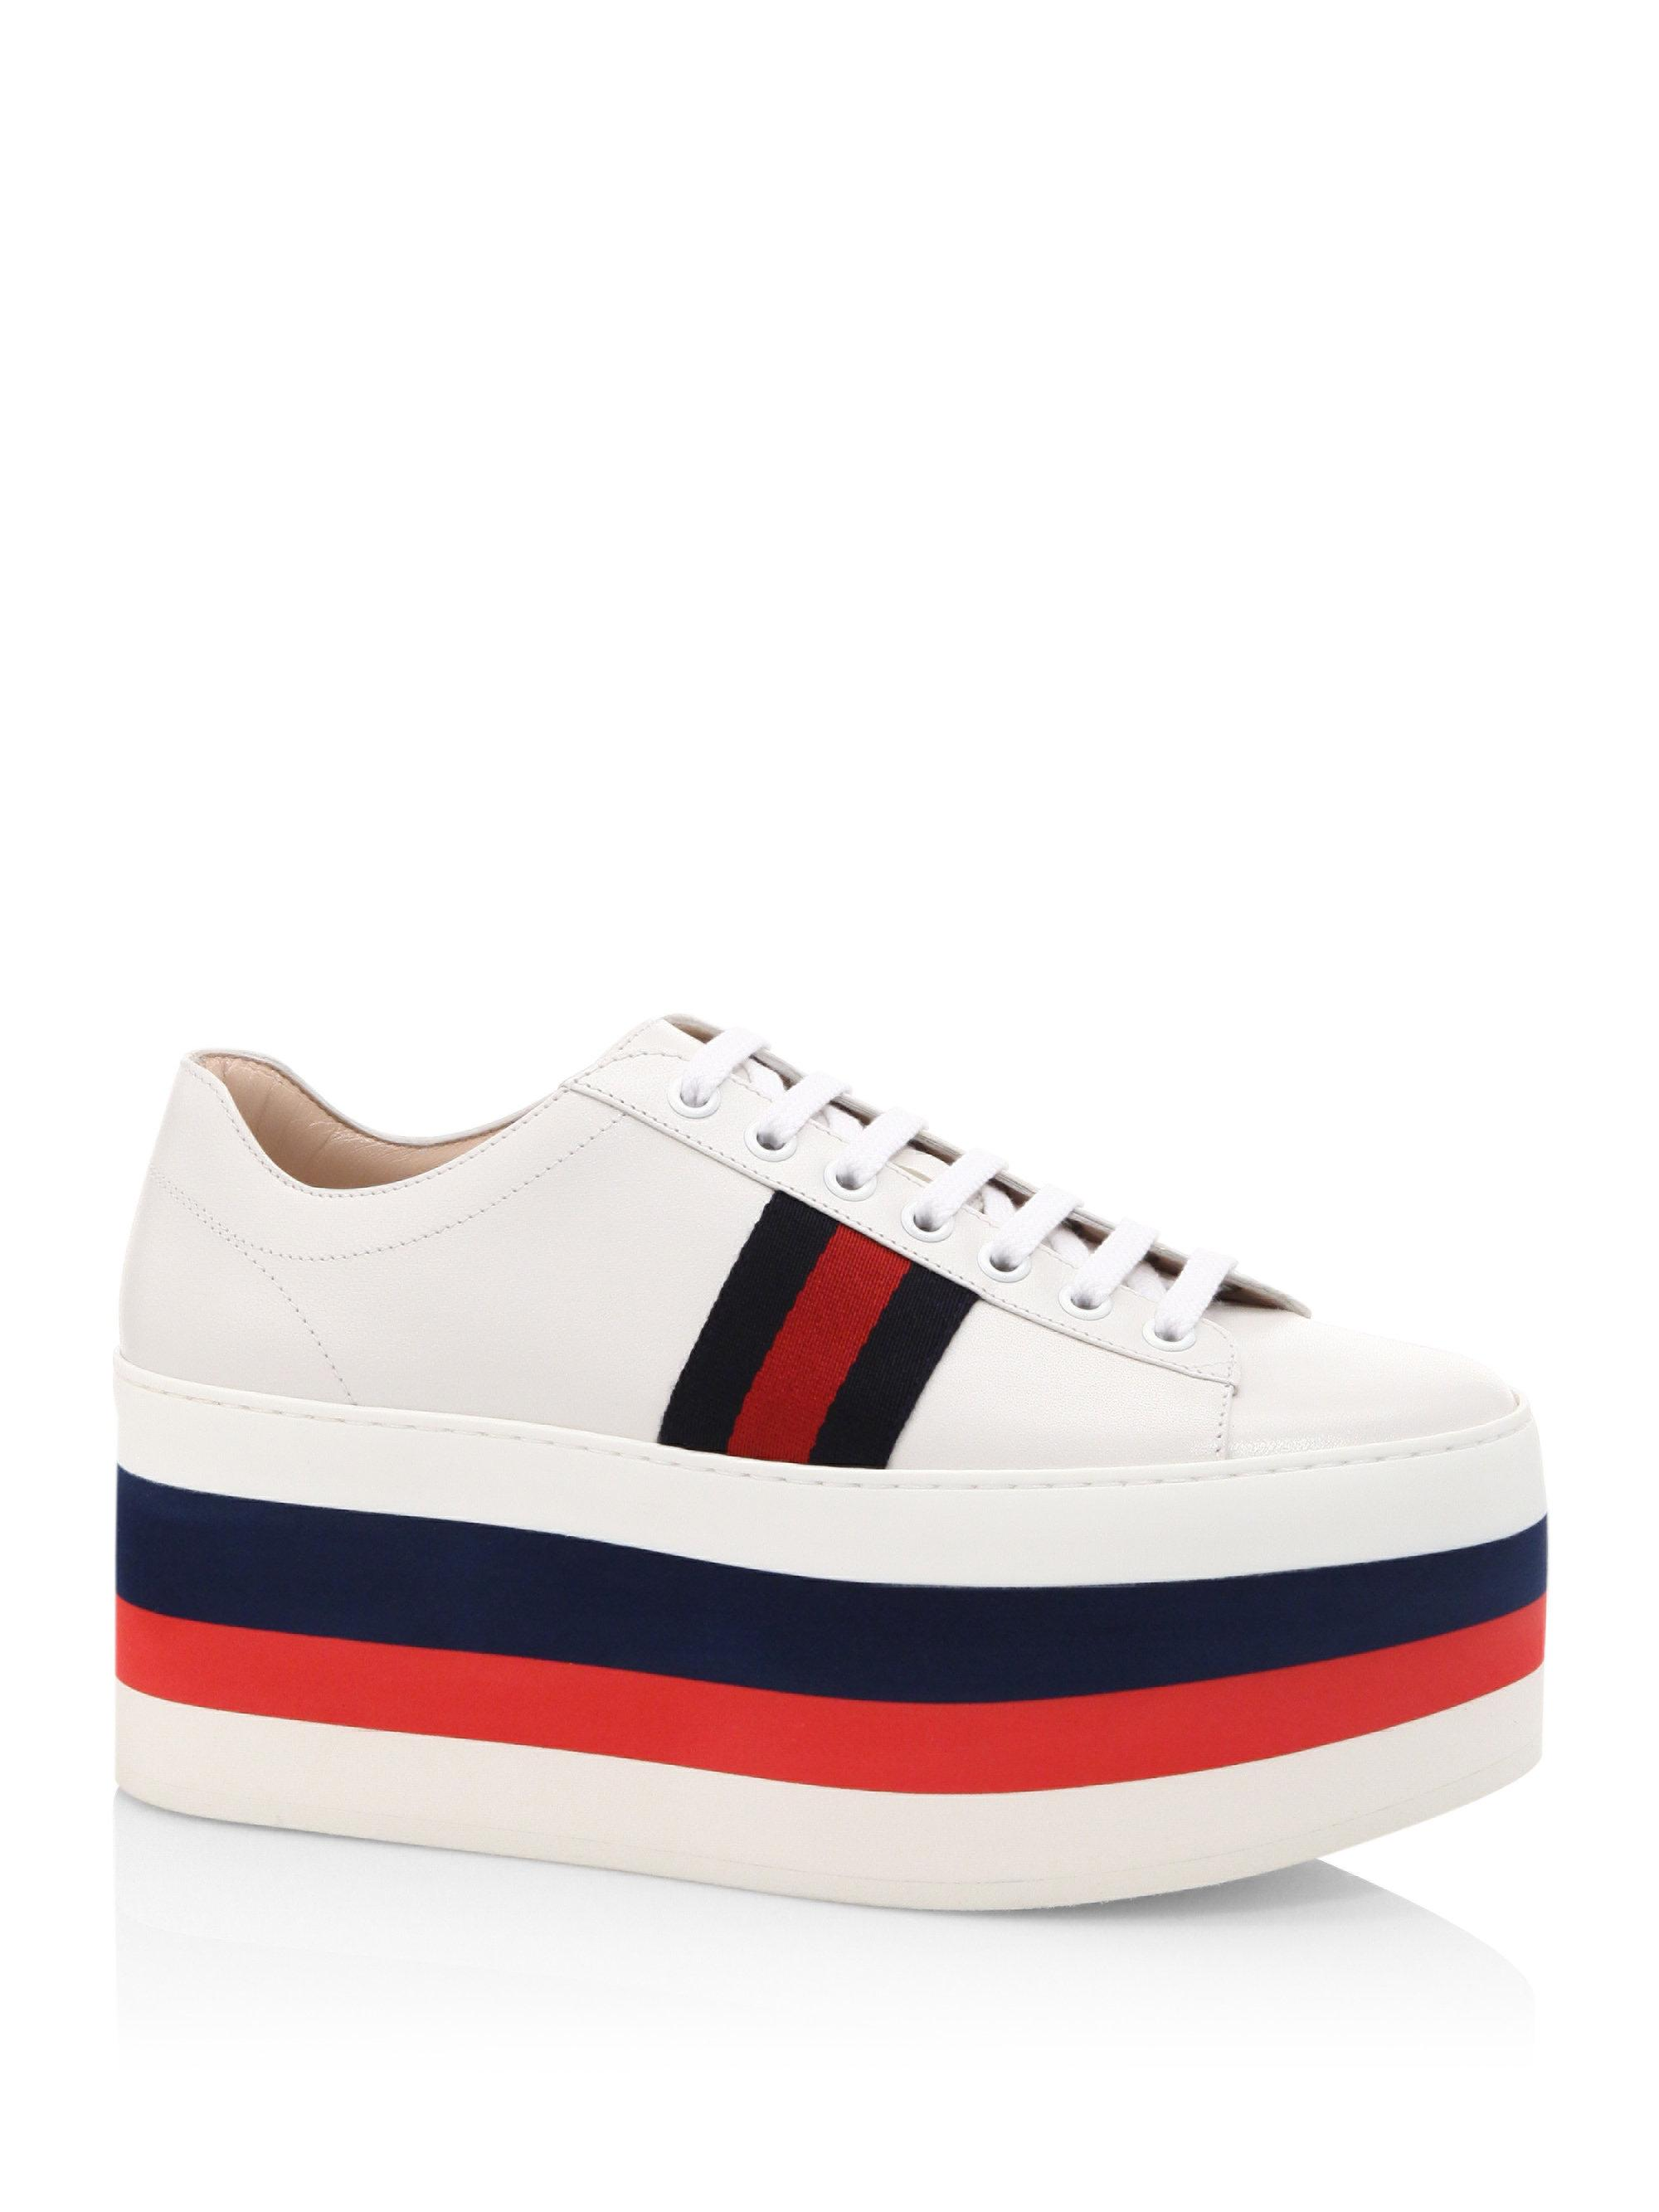 989e79e51 Gucci Peggy Leather Rainbow Platform Sneakers in White - Lyst